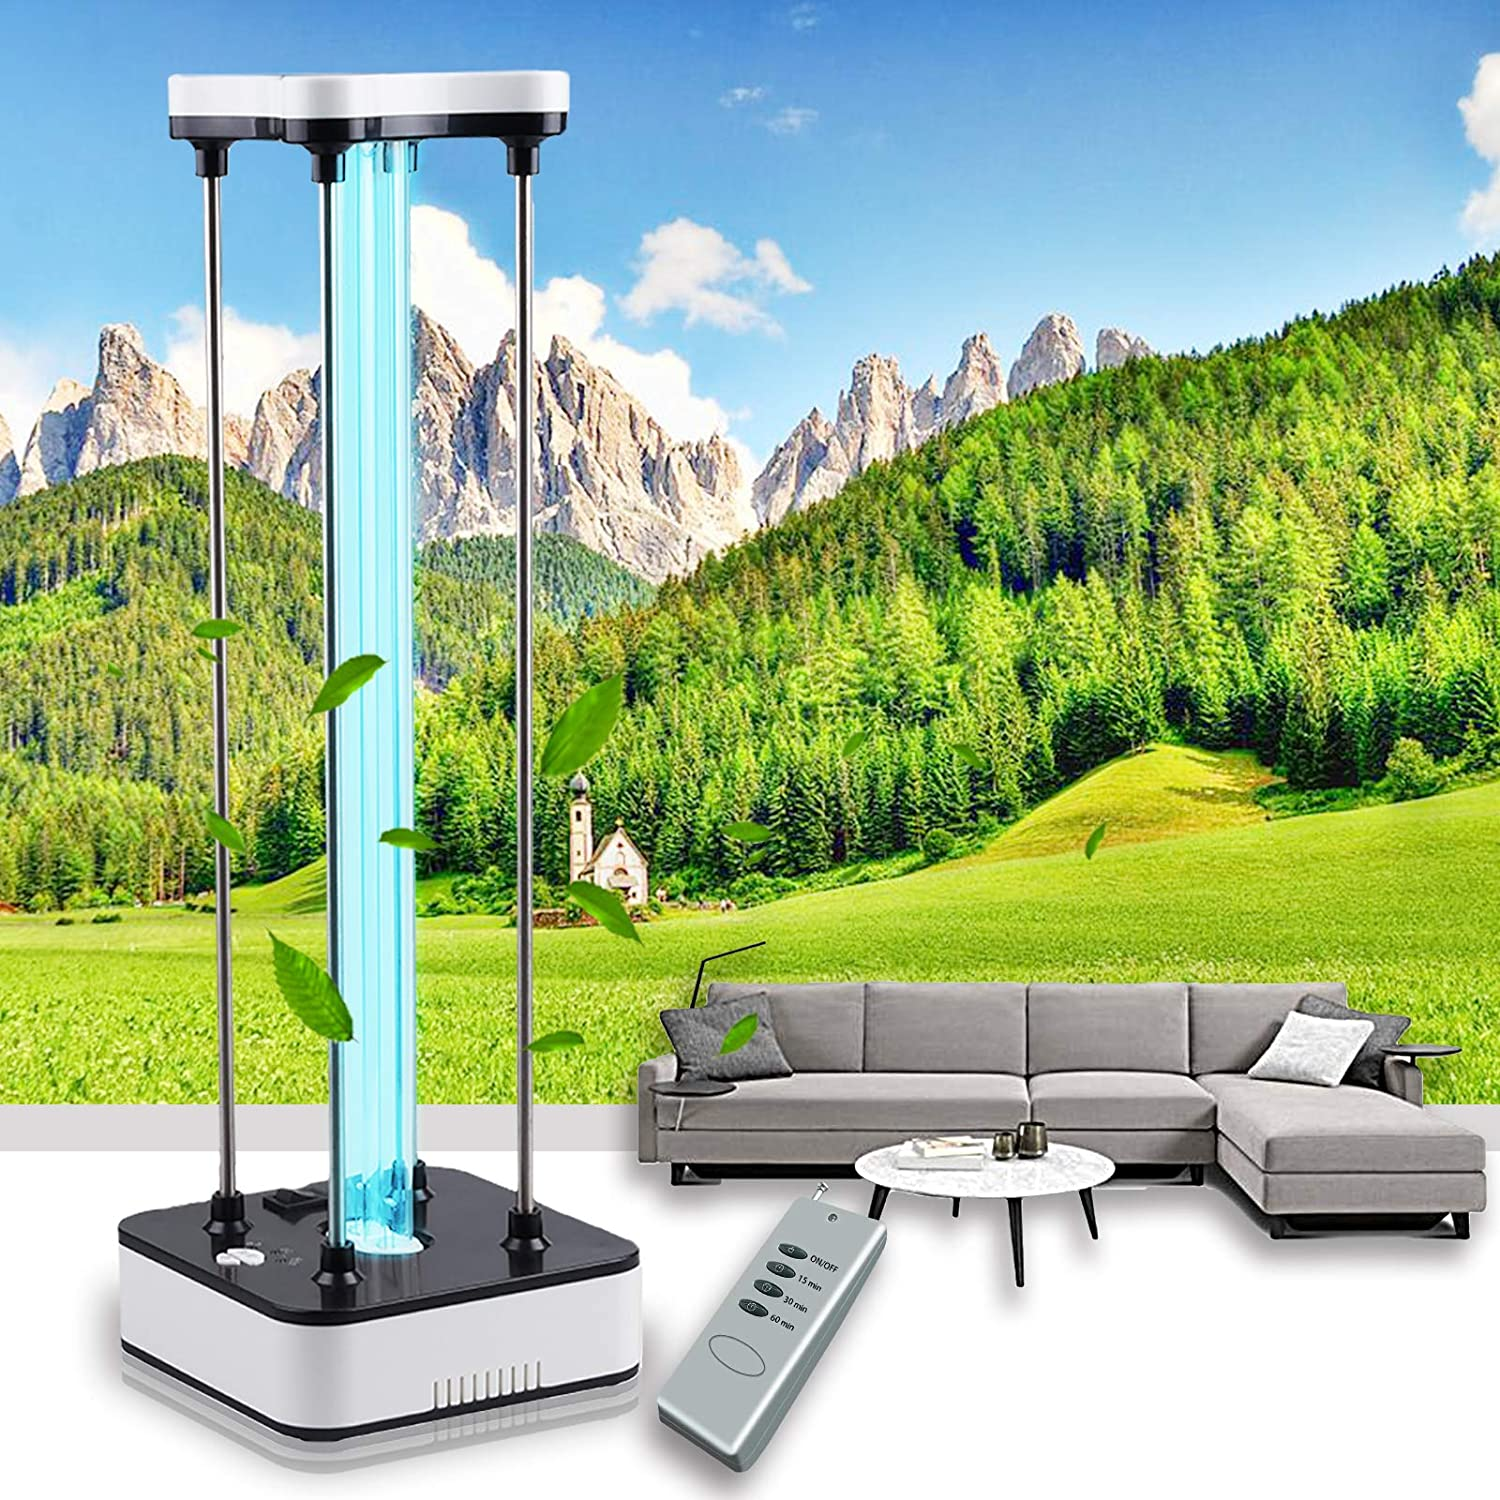 BEWITU 36W UVC Light UV Germicidal Lamp with Ozone UV Room Sanitizer with 15s Delay Time Remote Controller for Car Living Room Bedroom Household Kitchen Hotel Pet Area